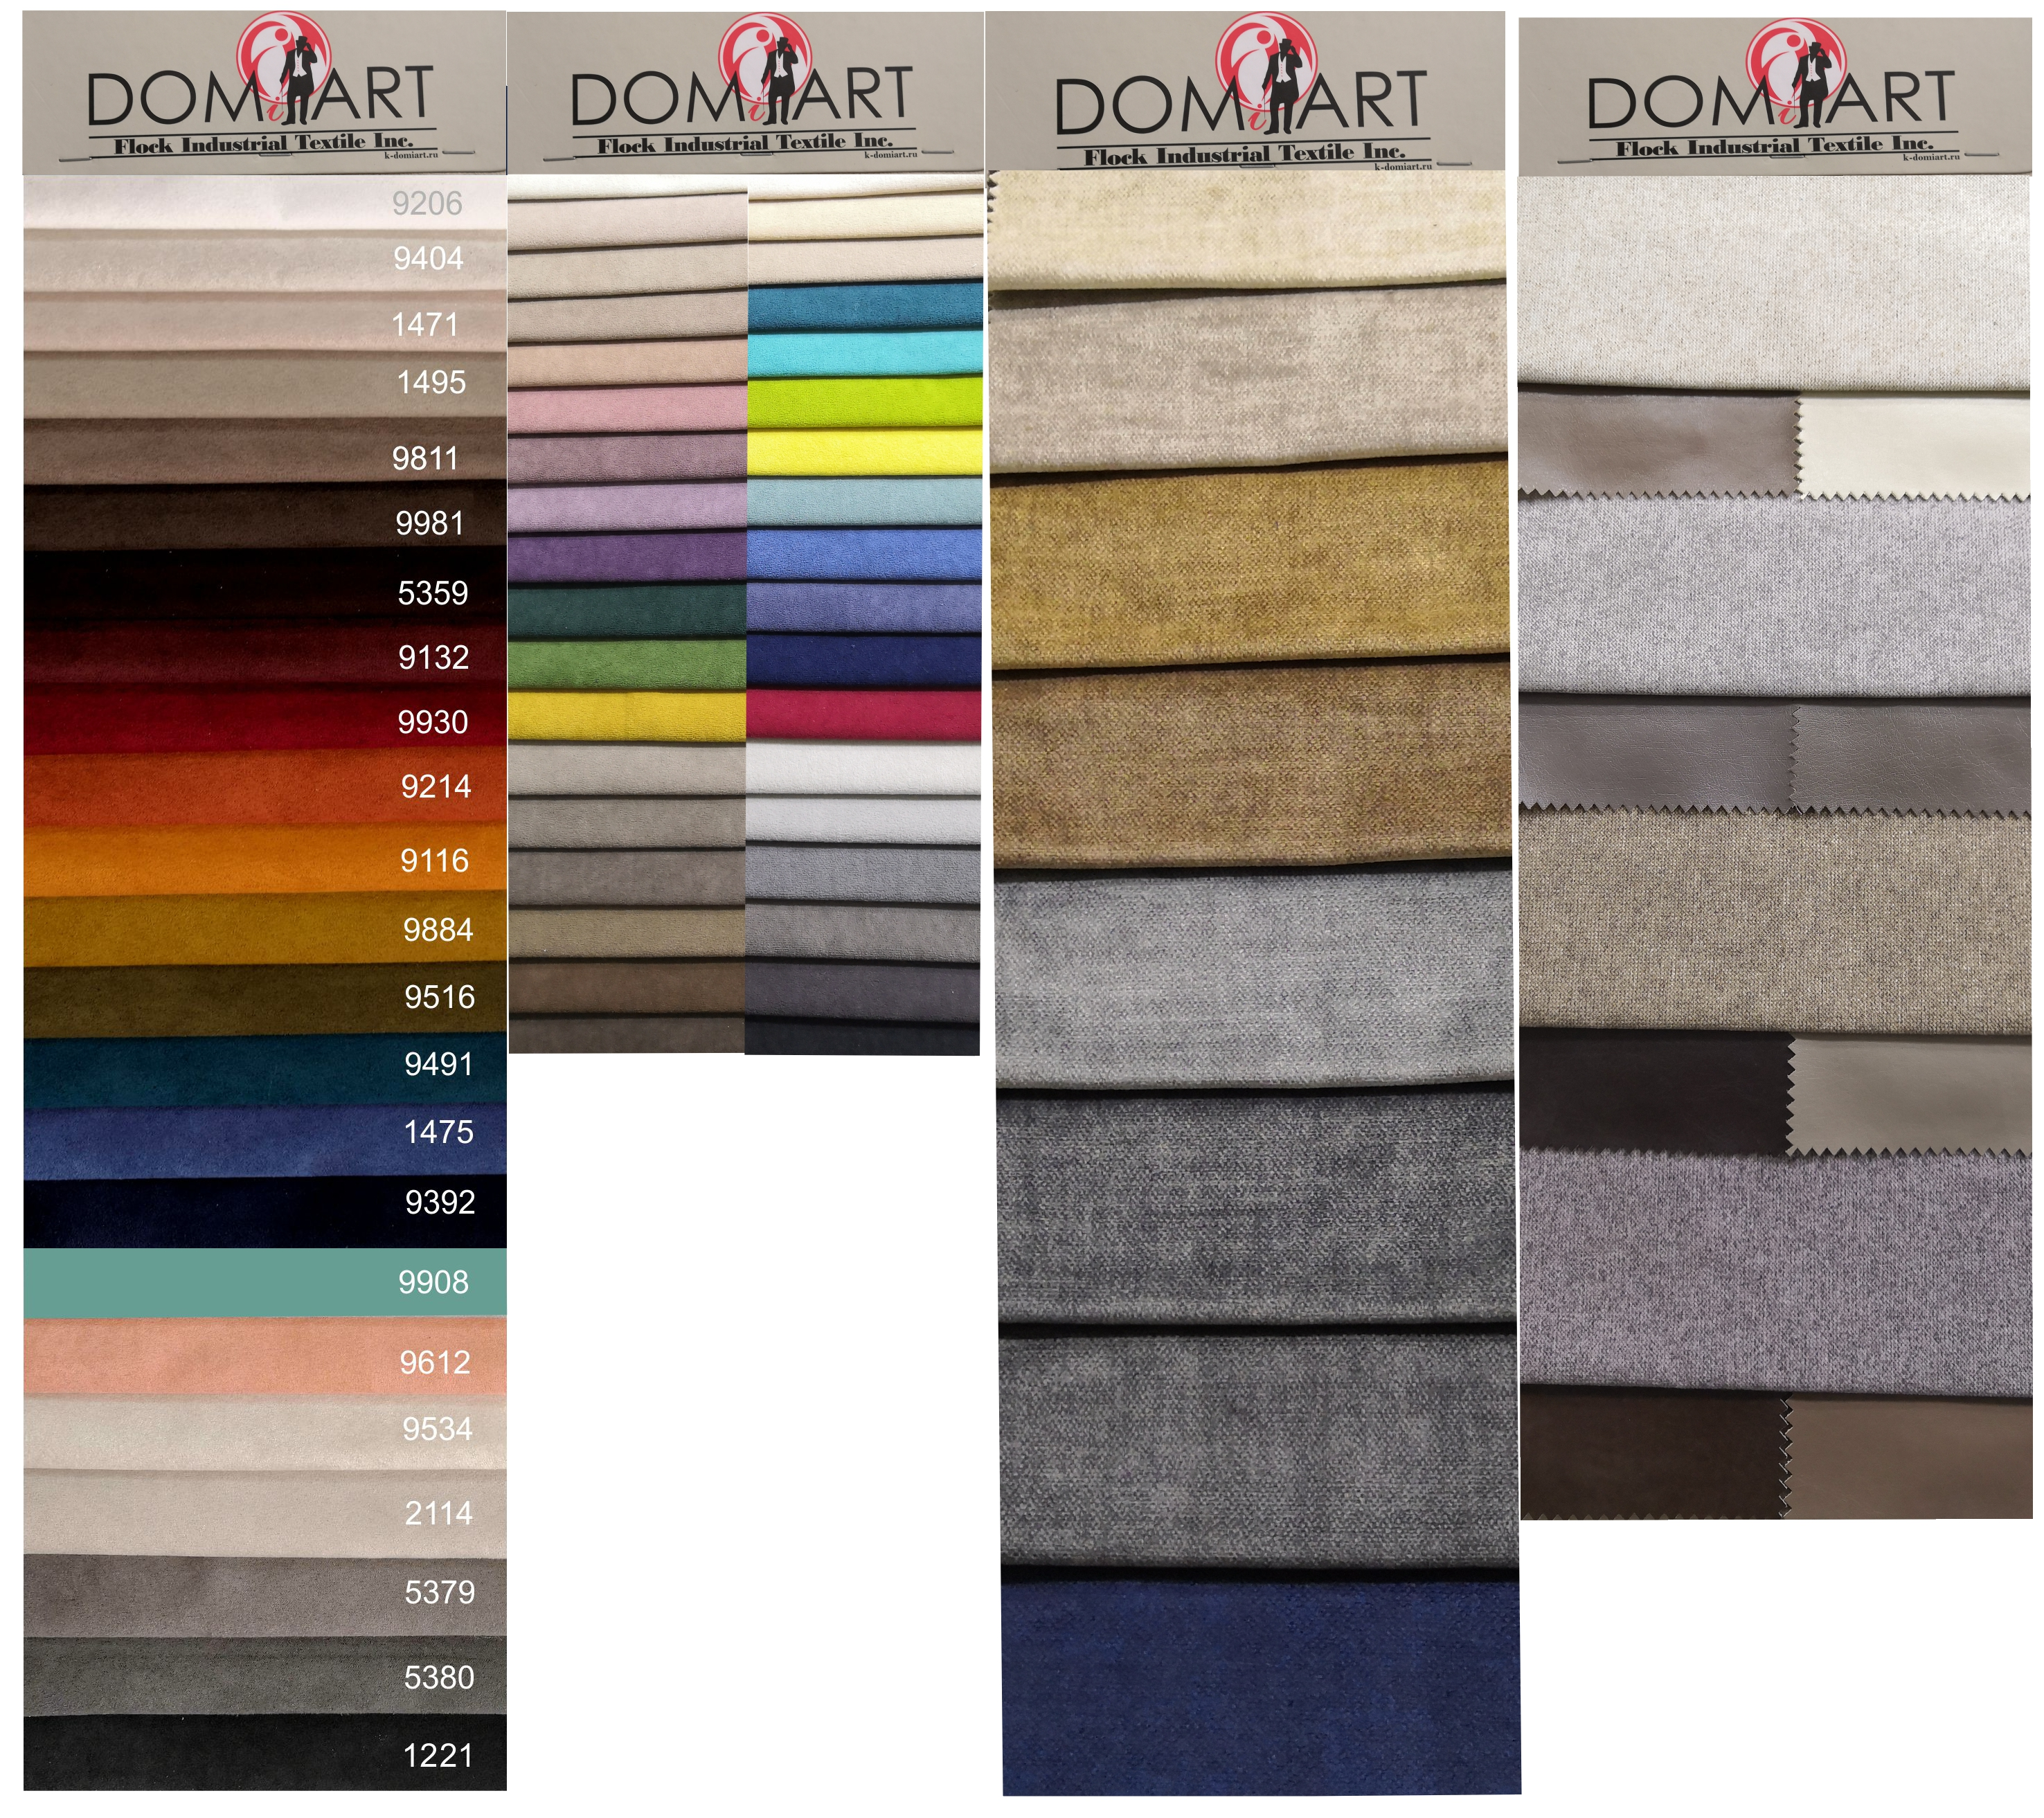 DOMIART fabric